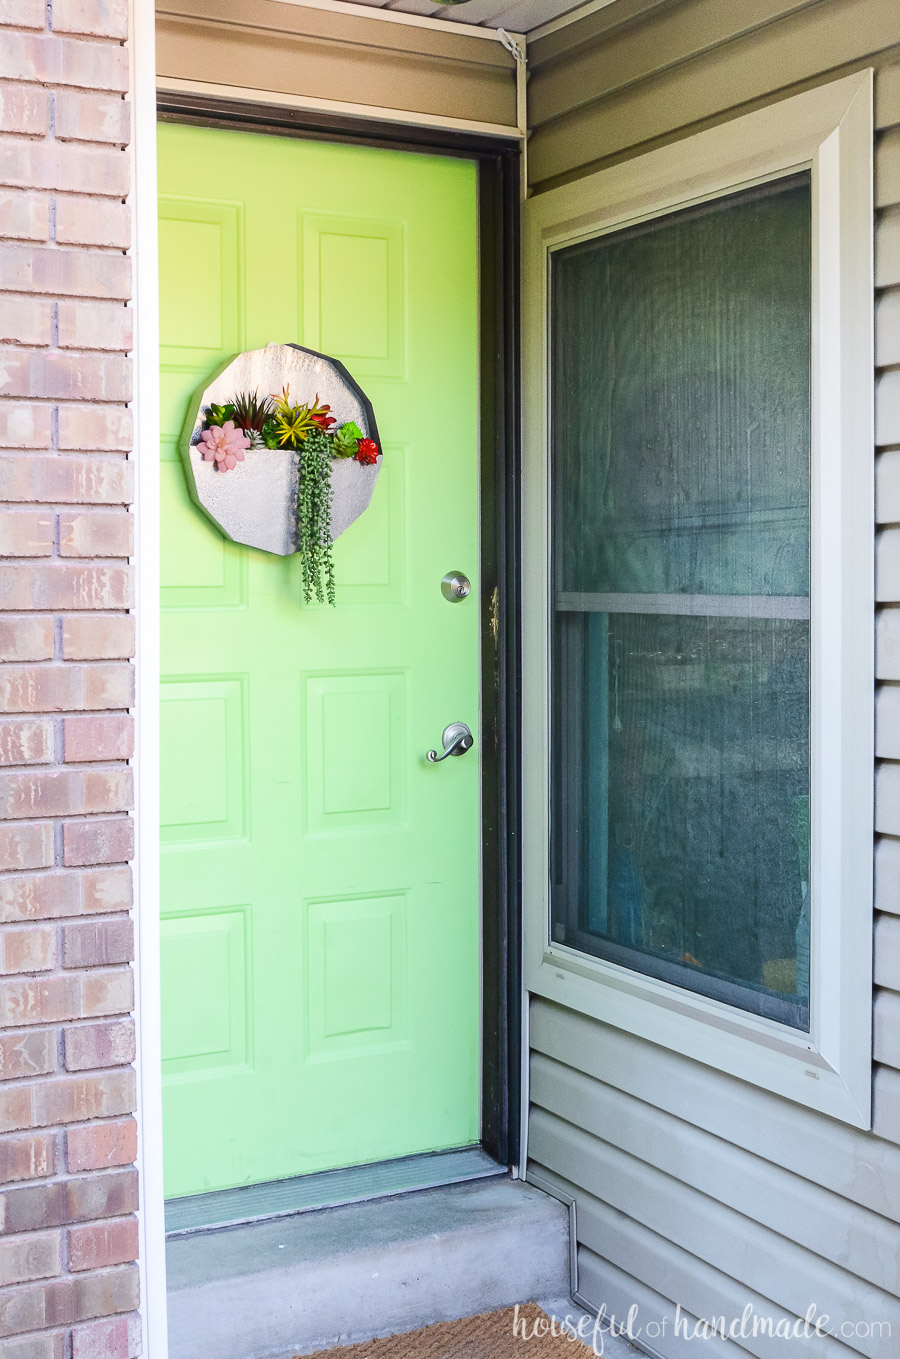 A succulent wall planter is a unique wreath door idea. Faux metal planter on a green door next to almond siding.